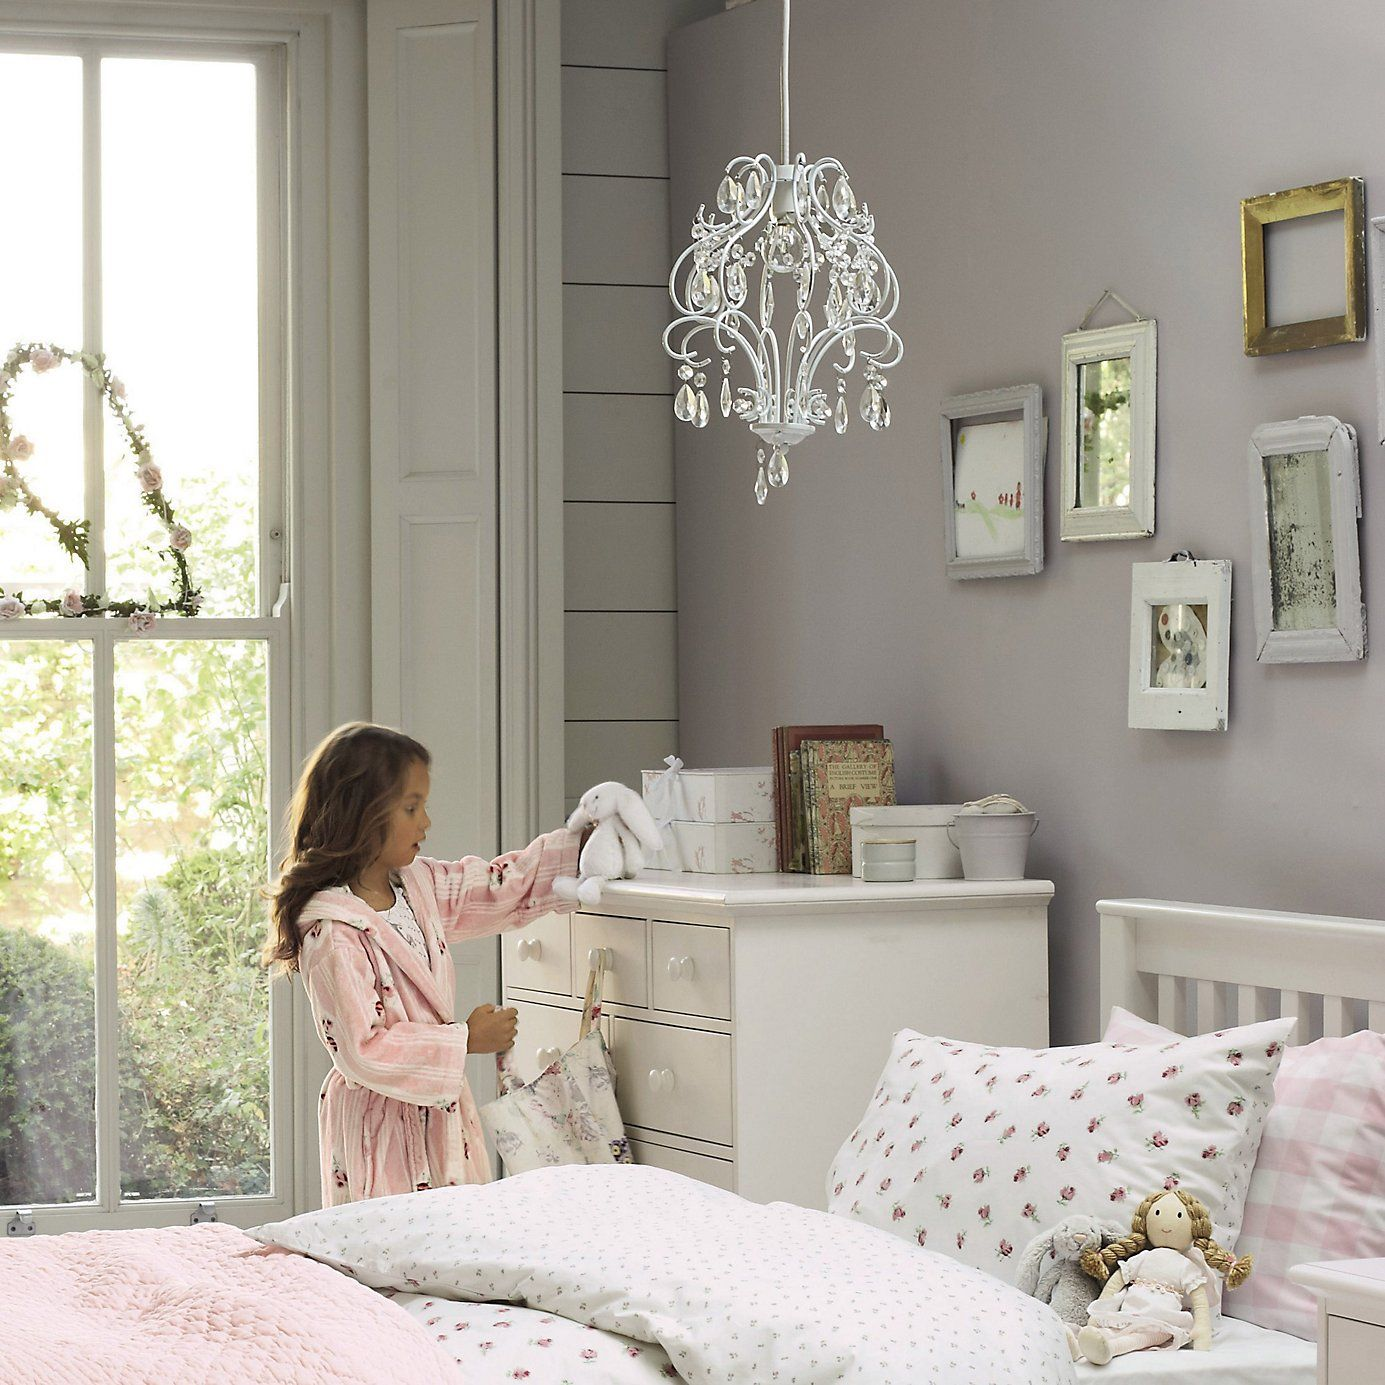 Buy Childrens Bedroom U003e Bedroom Accessories U003e Chandelier Shade From The  White Company